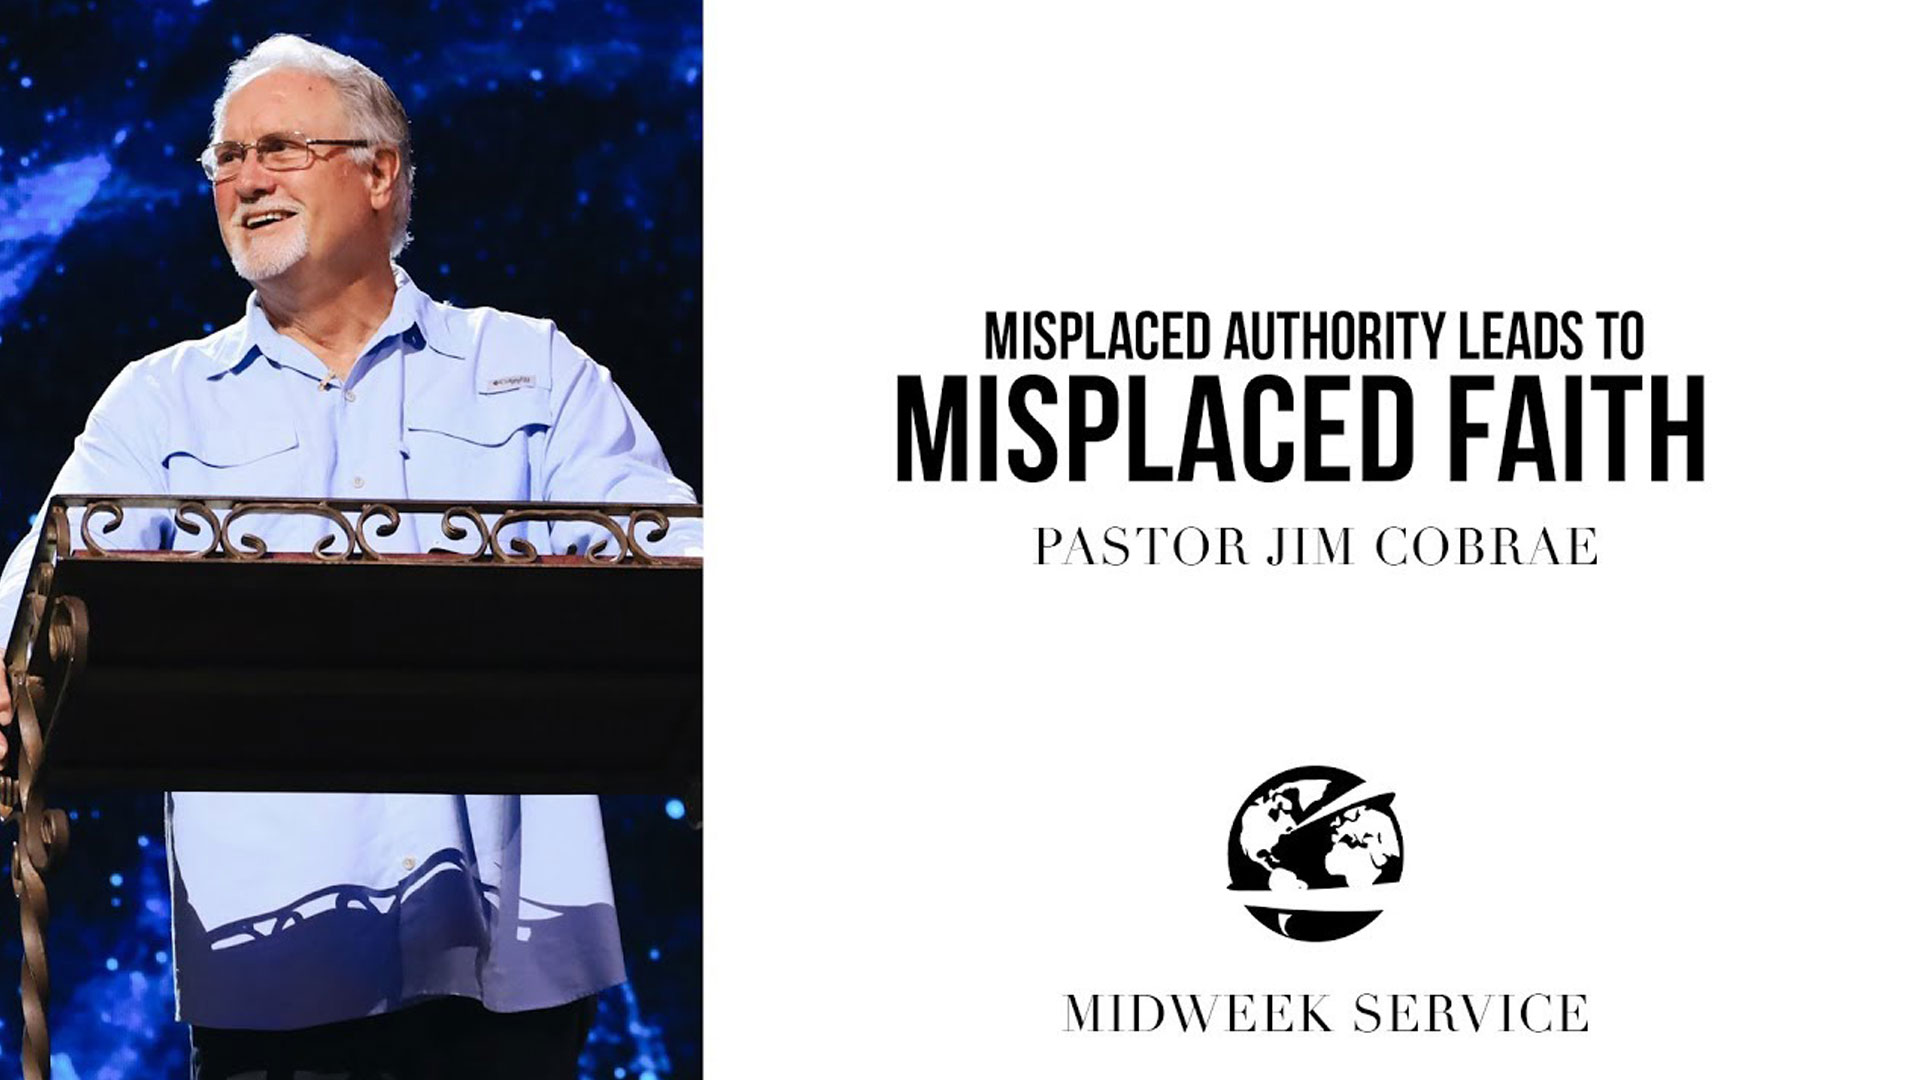 Watch Misplaced Authority Leads to Misplaced Faith